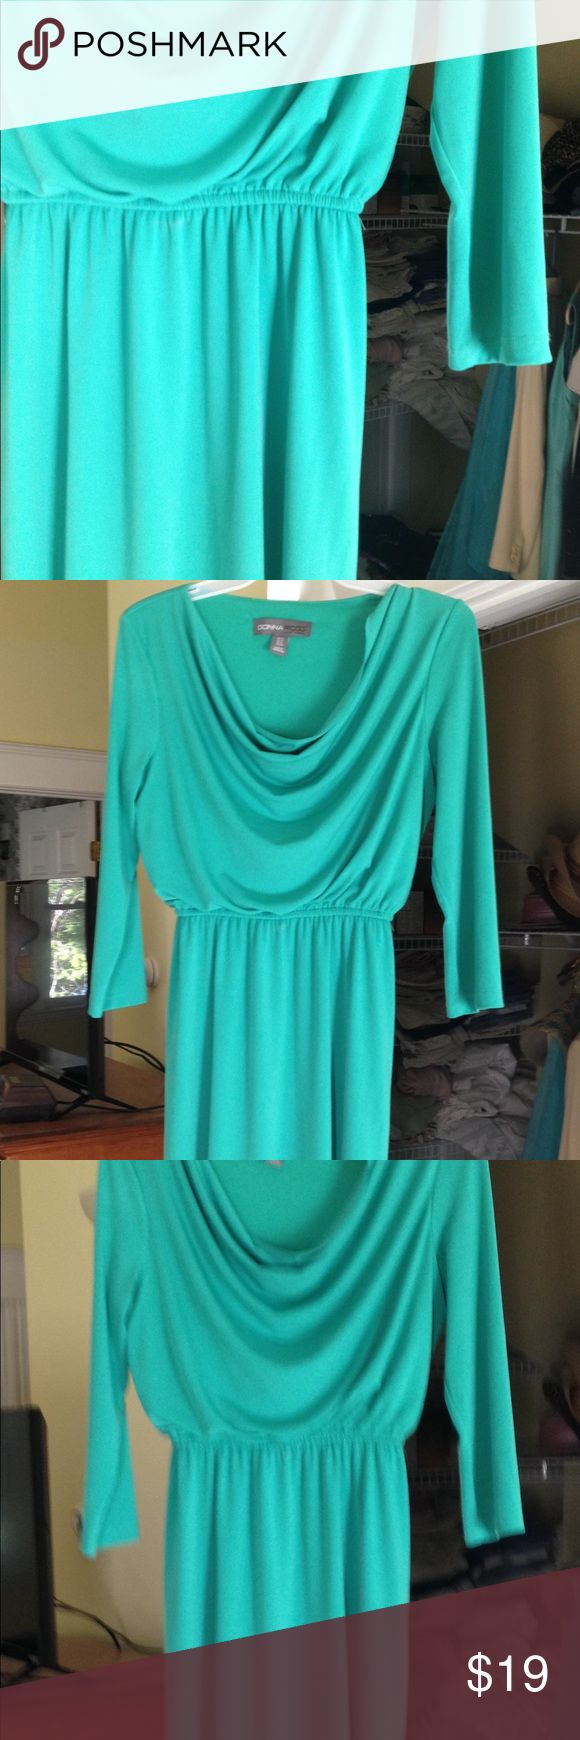 Donna Ricco NY long sleeved dress size 4 Cowl neckline long sleeved dress by Donna Ricco New York size 4. Silky flowing material. Elastic waistline. Donna Ricco Dresses Midi